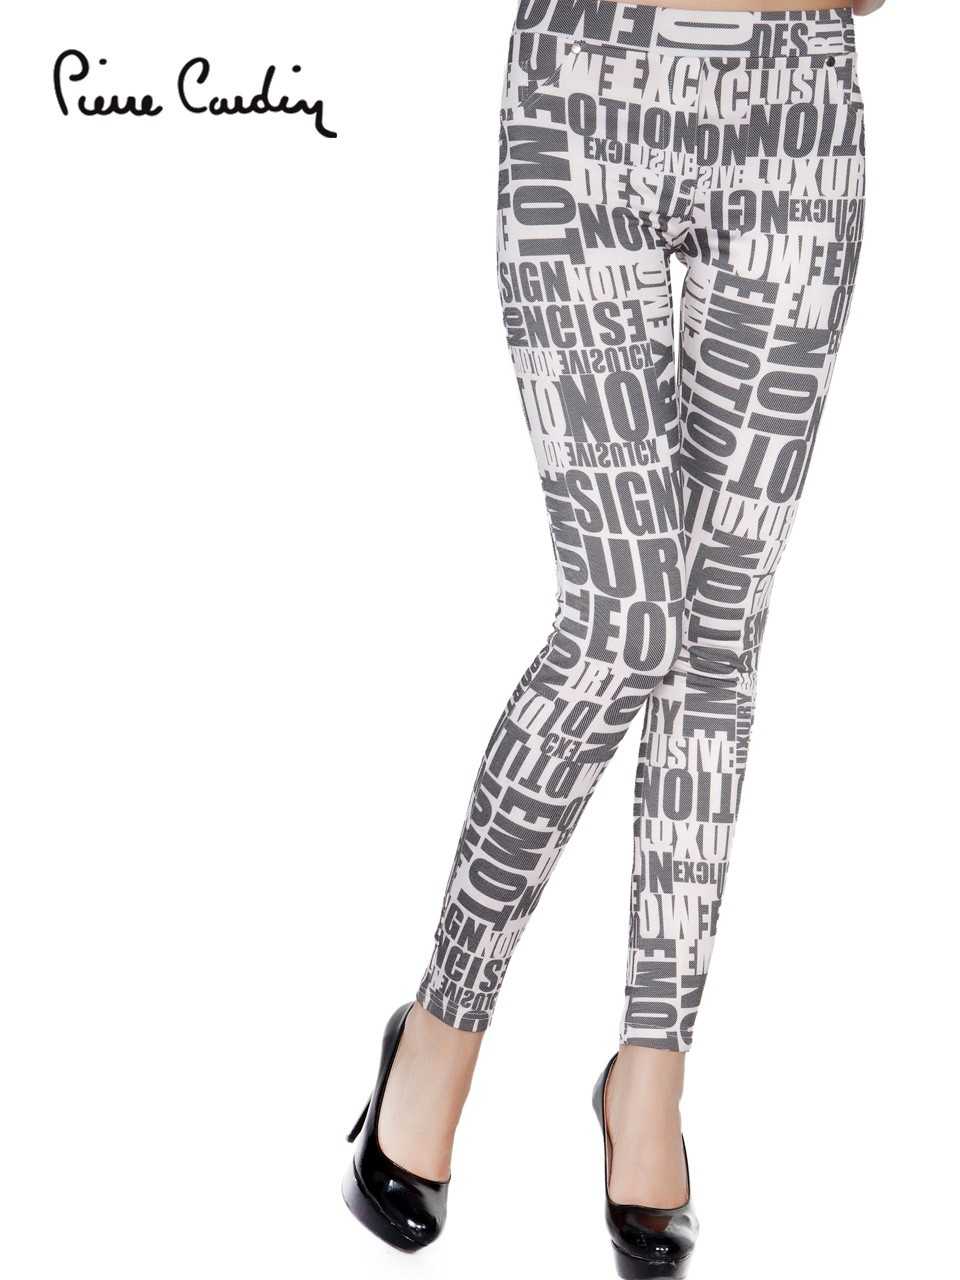 7c11b30b0534a PIERRE CARDIN OEM WOMEN'S TIGHTS COLLECTION TRENDY WHITE & BLACK  COMBINATION PATTERNED LEGGINGS